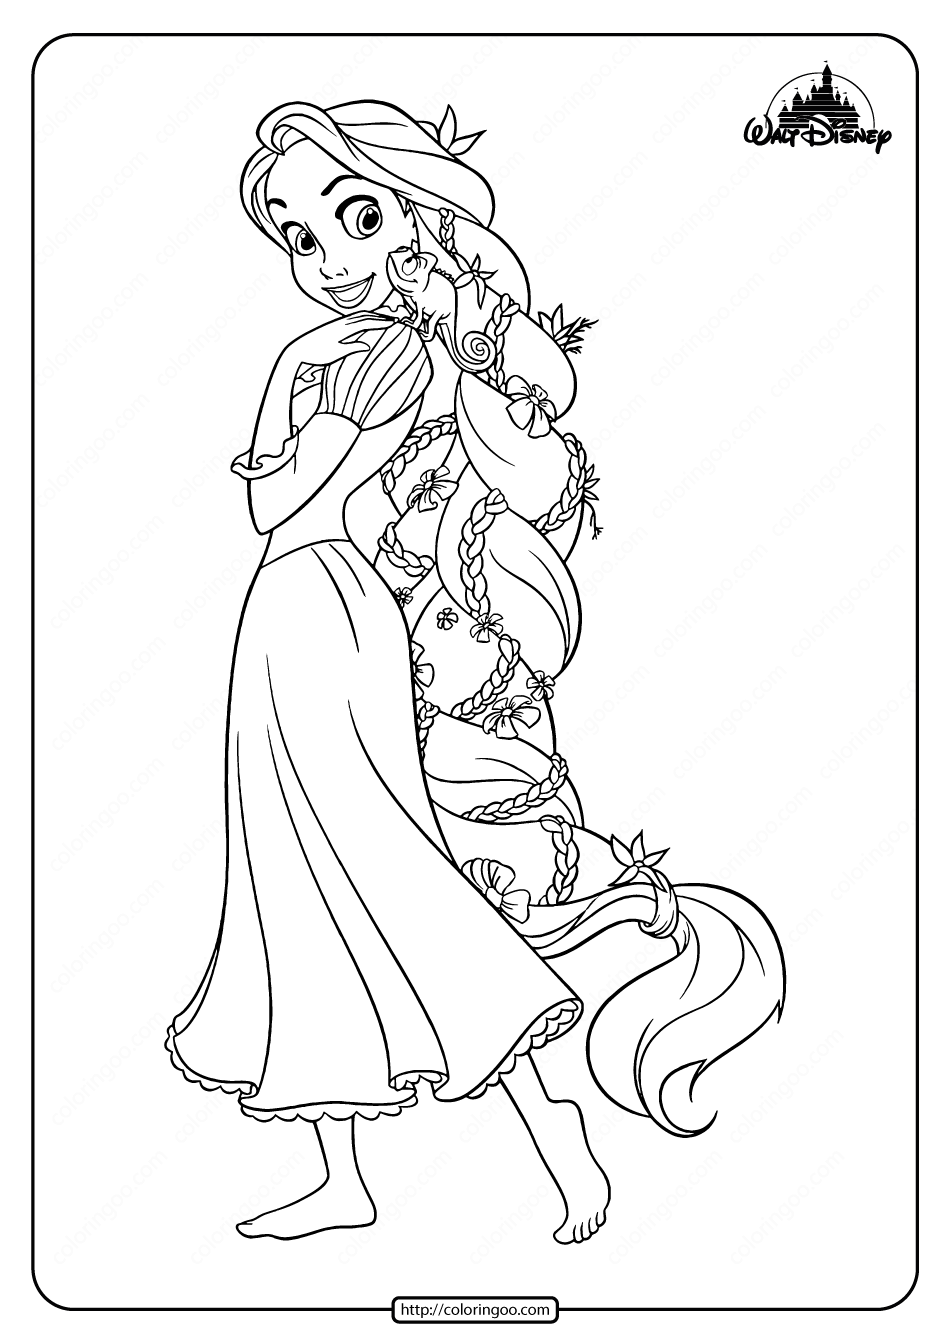 Free Printable Tangled Coloring Pages For Girls Tangled Coloring Pages Rapunzel Coloring Pages Disney Princess Coloring Pages